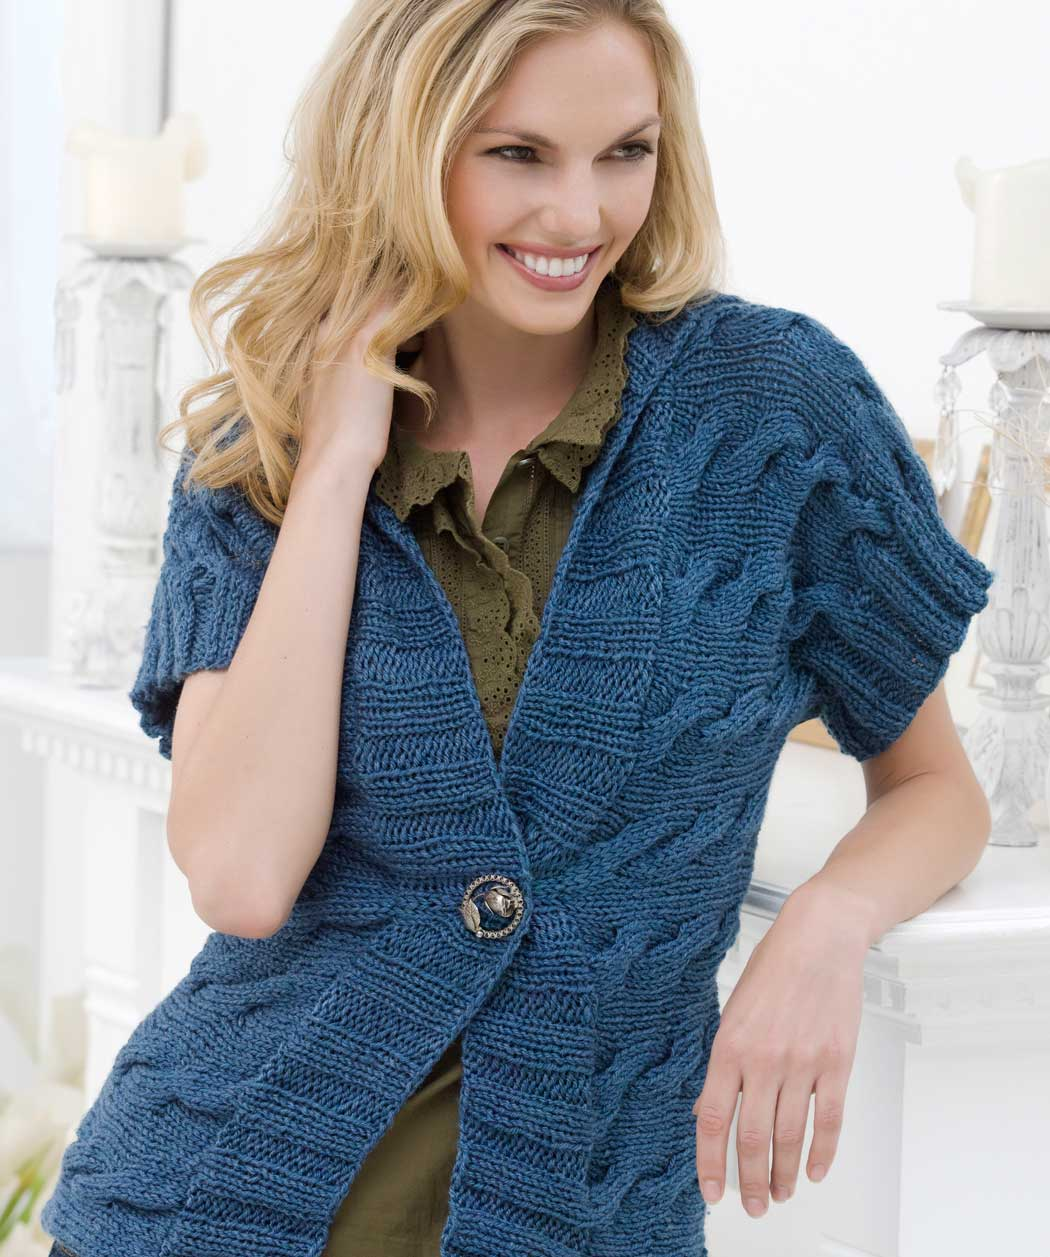 Free Sweater Vest Knitting Patterns images